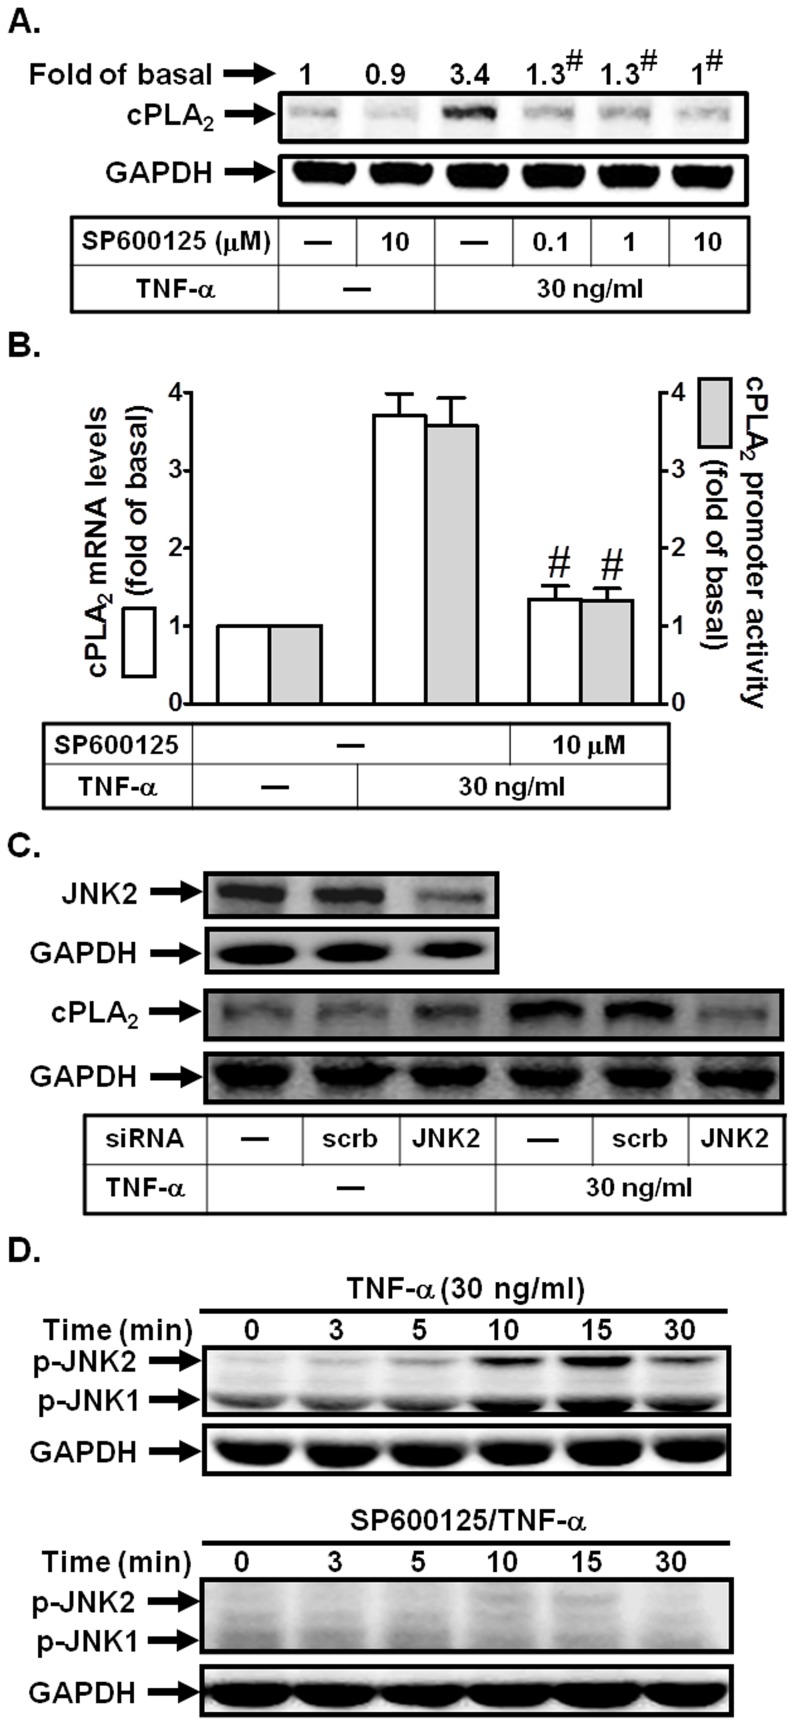 JNK1/2 is involved in TNF-α-induced cPLA 2 expression. (A) Cells were pretreated with SP600125 for 1 h, and then incubated with TNF-α for 24 h. The protein levels of cPLA 2 were determined by Western blot. (B) Cells were pretreated with SP600125 (10 µM) for 1 h, and then incubated with TNF-α for 6 h. cPLA 2 mRNA levels and promoter activity were determined. (C) Cells were transfected with scrambled or JNK2 siRNA, and then incubated with TNF-α for 24 h. The protein levels of JNK2 and cPLA 2 were determined. (D) Cells were pretreated with or without SP600125 (10 µM) for 1 h, and then incubated with TNF-α for the indicated time intervals. The levels of phospho-JNK1/2 were determined. Data are expressed as mean±S.E.M. of three independent experiments. # P